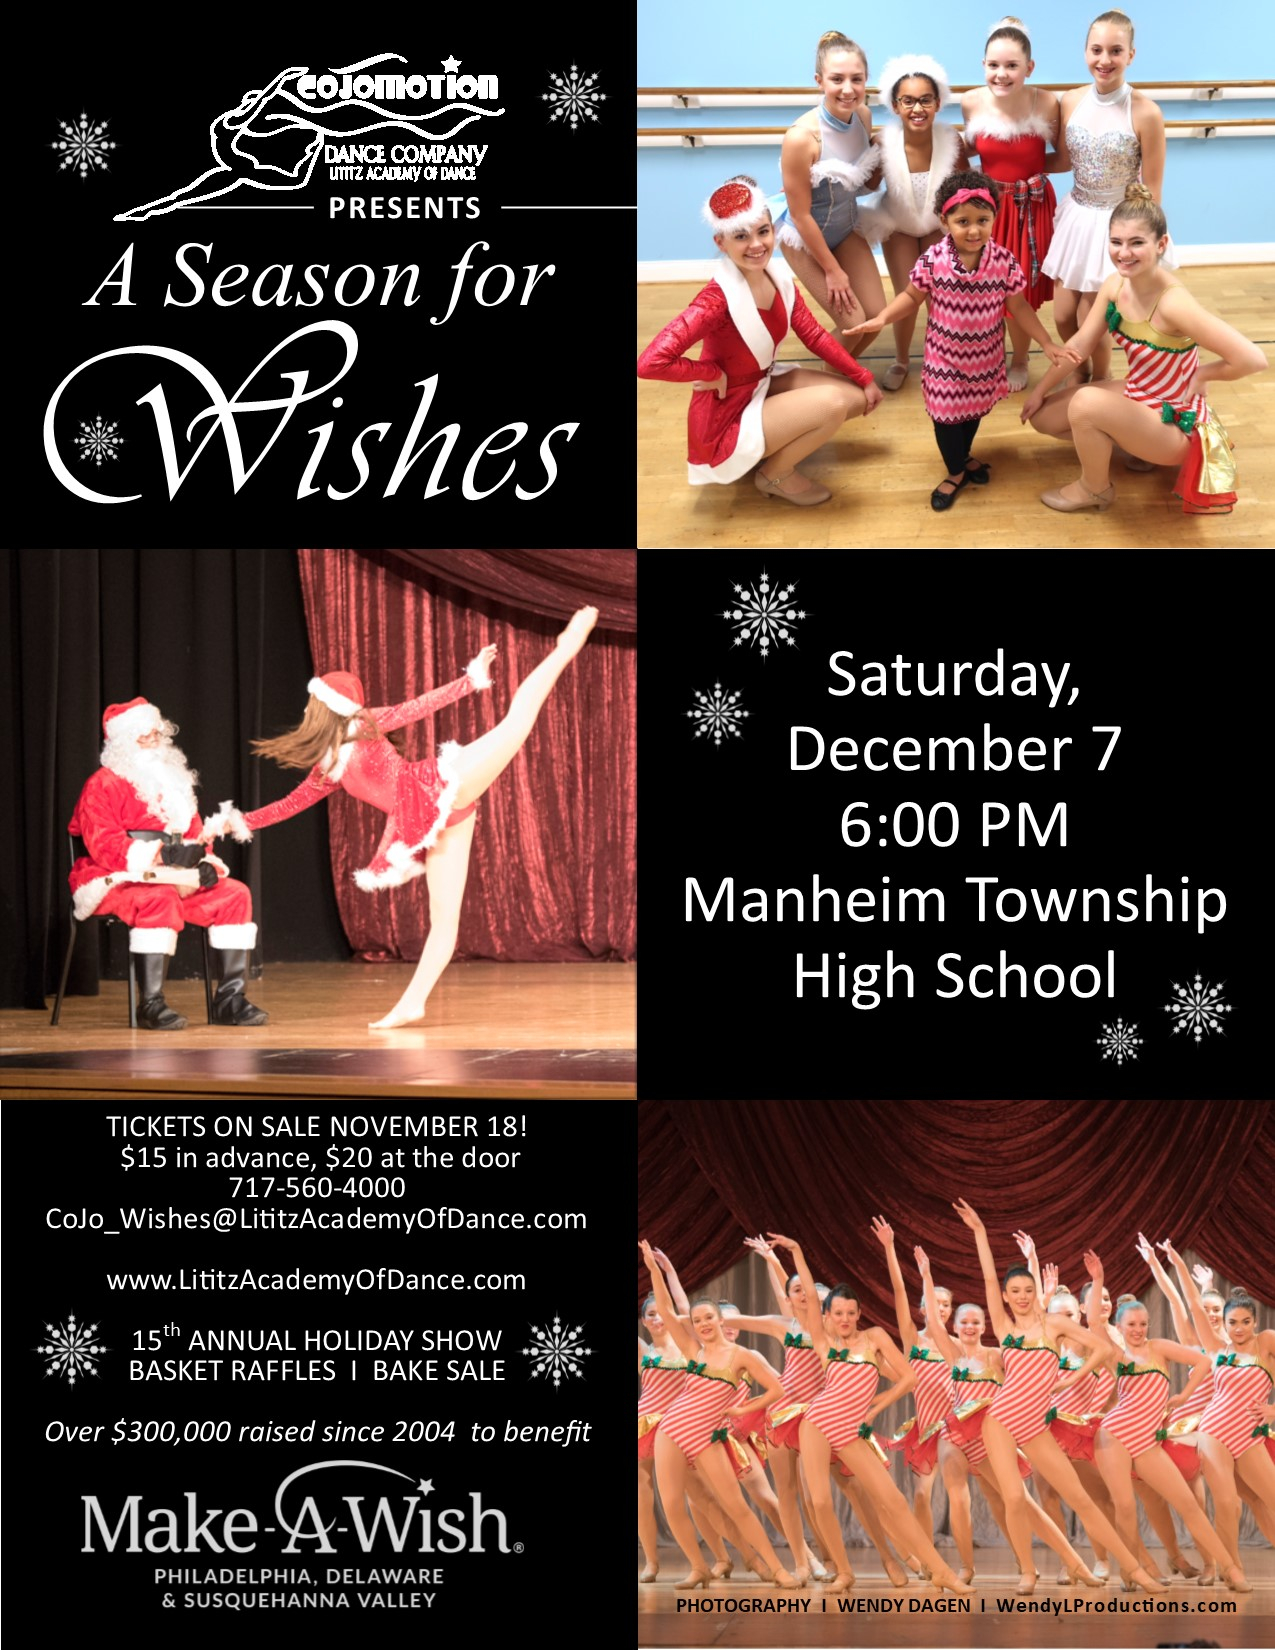 A Season For Wishesrsvpa Intended For Manheim Township School Calendar